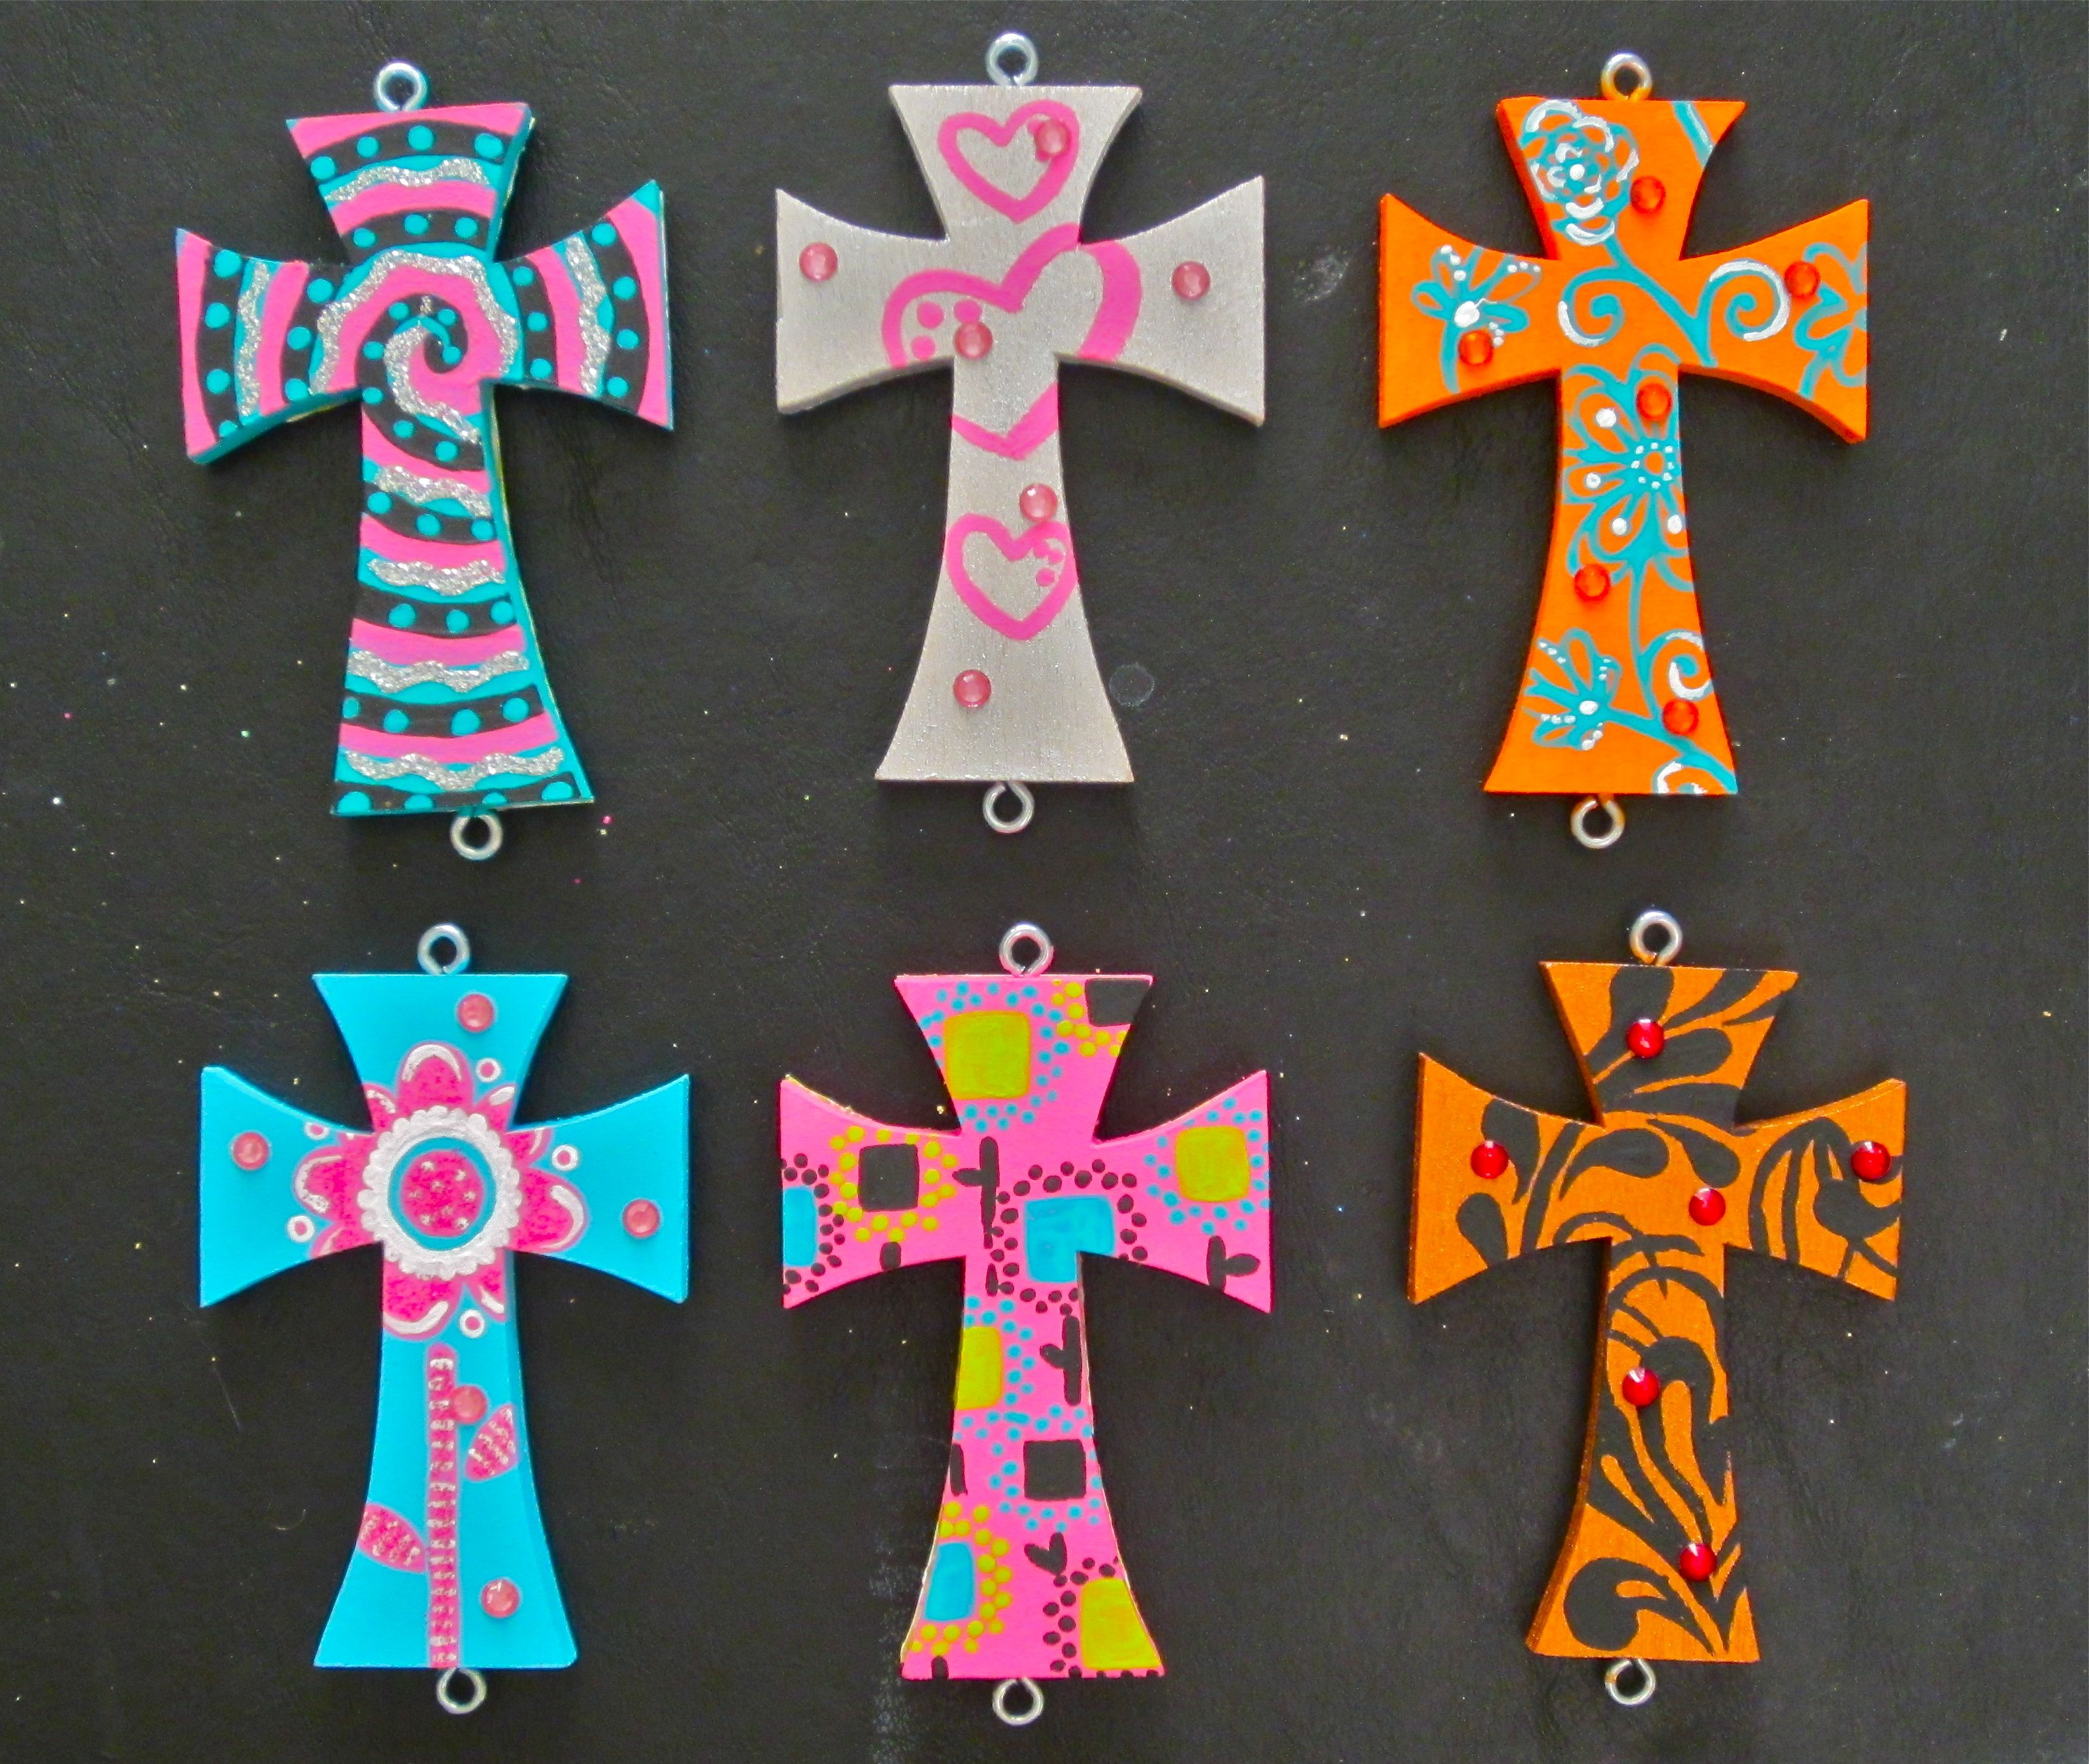 Large Painted Wood Crosses Operation Mend And Replace Cross